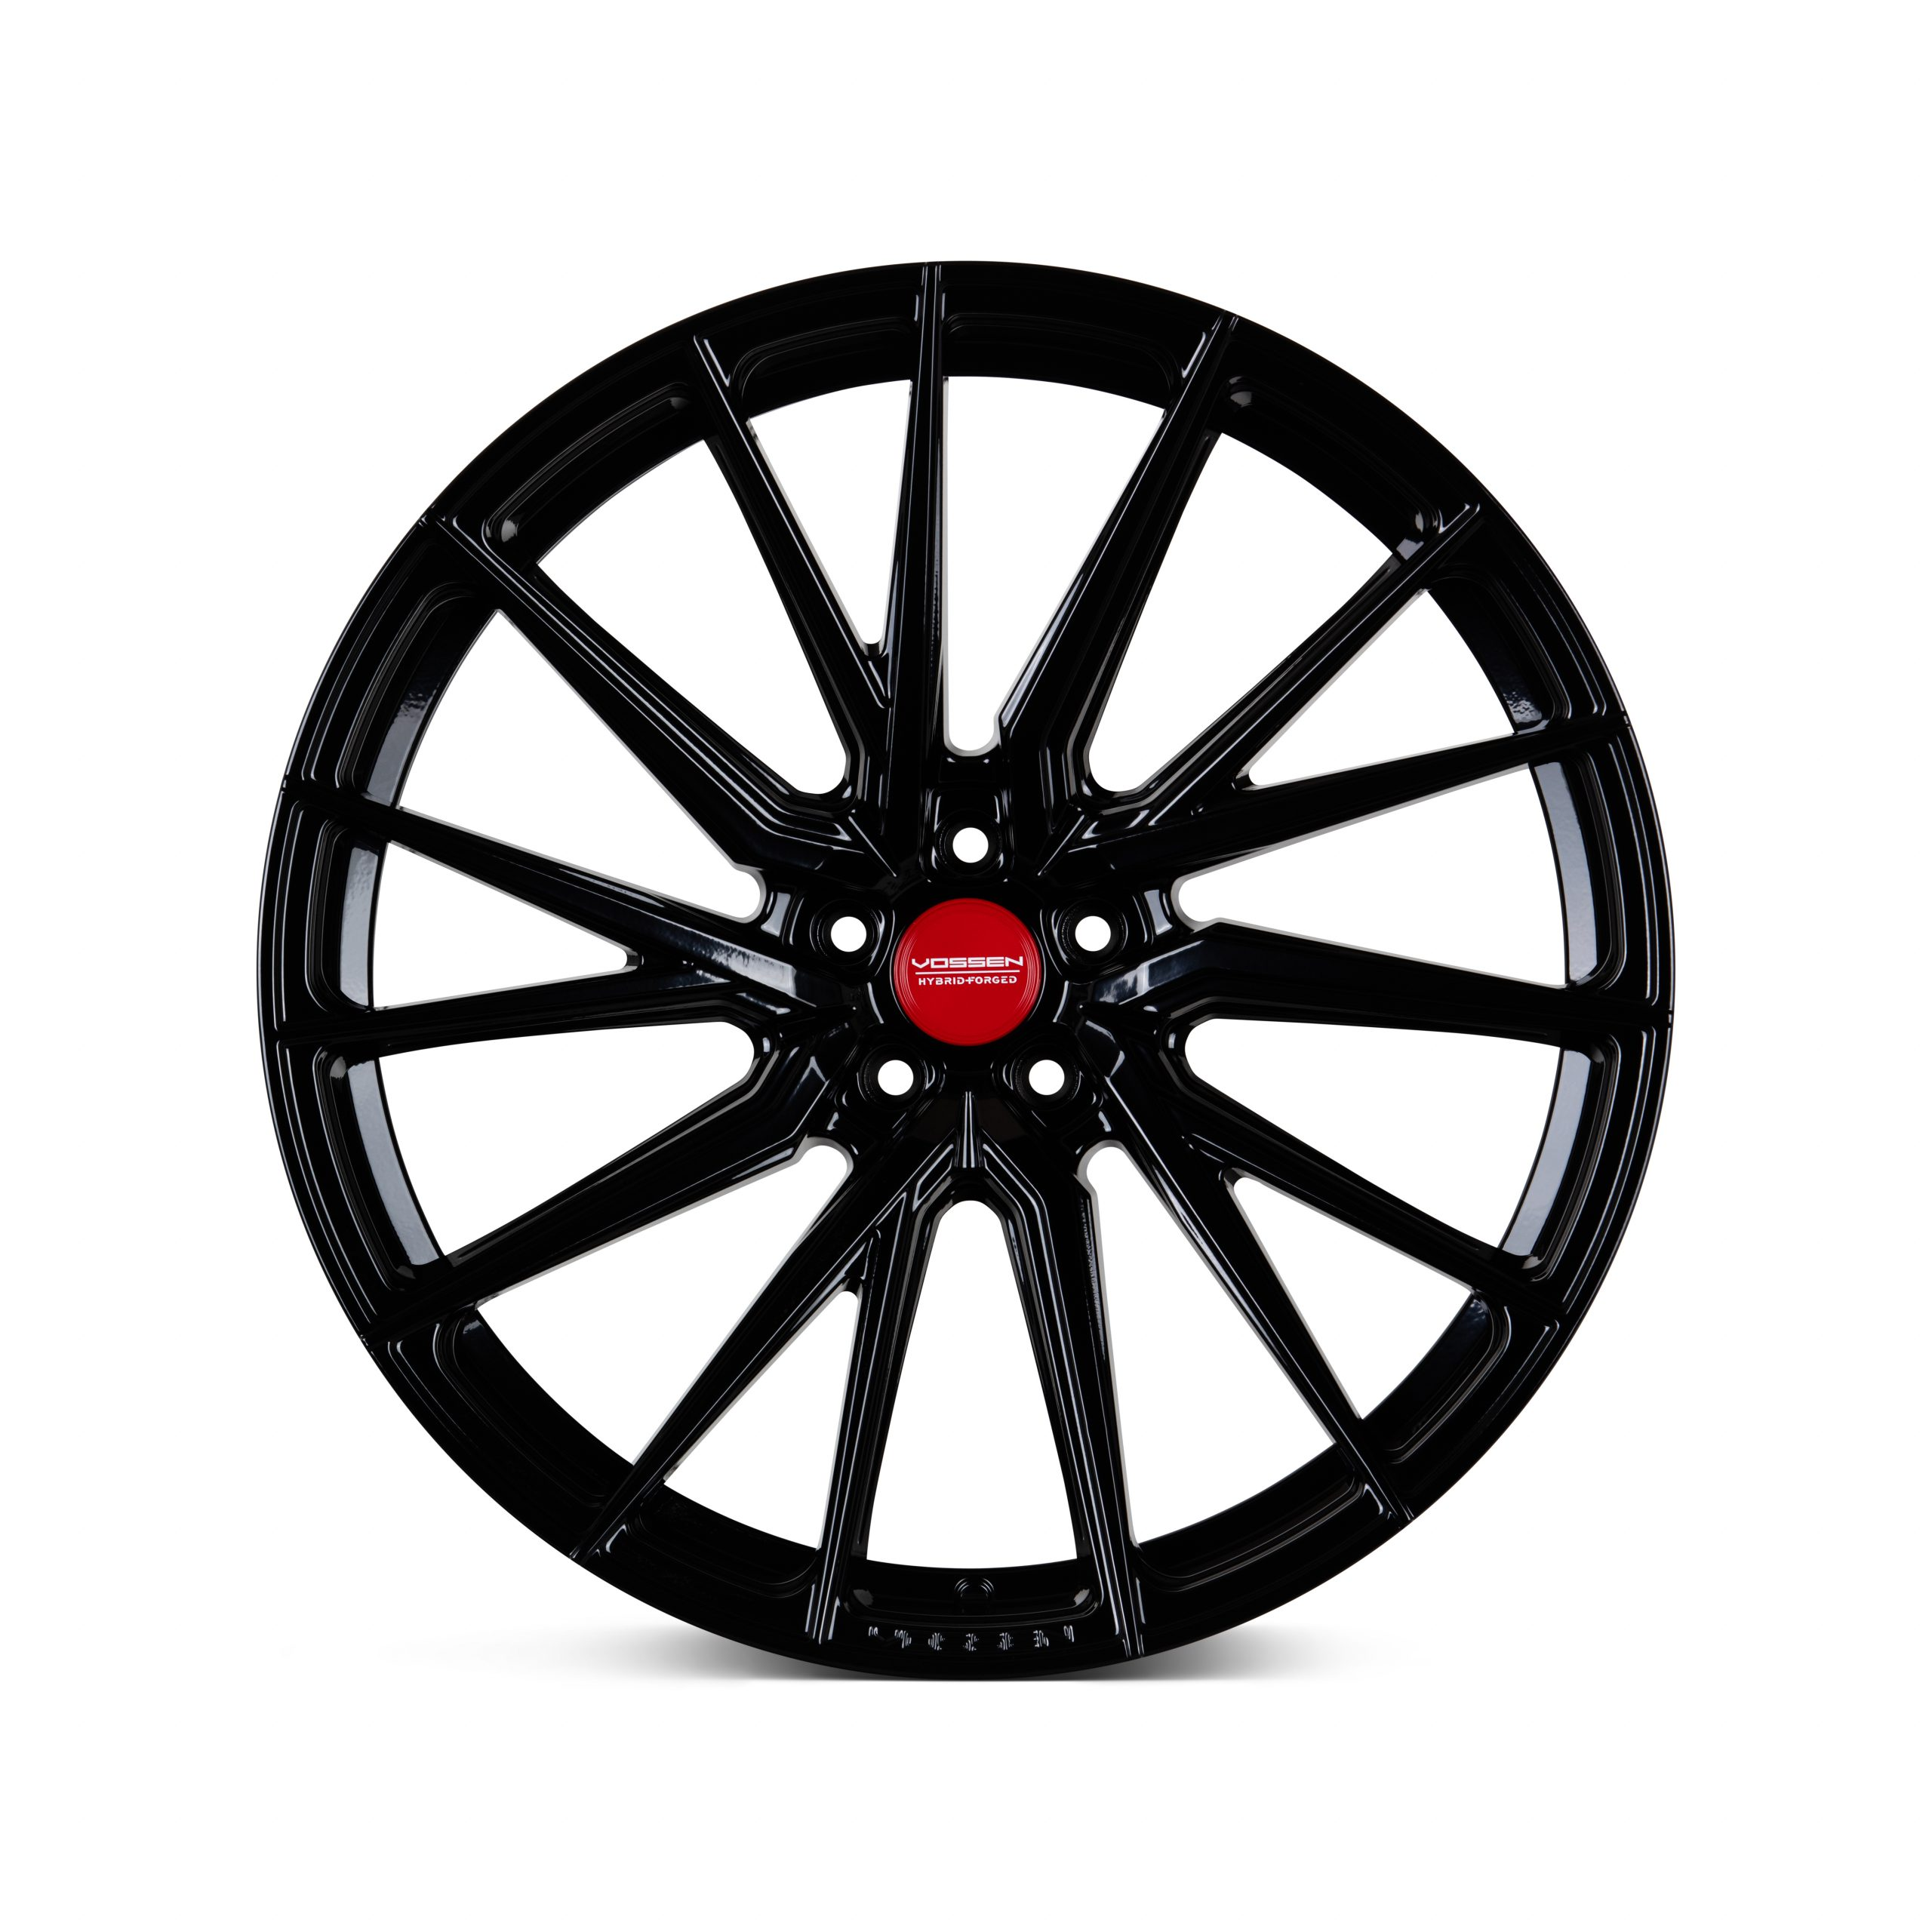 HF-4T from Vossen Wheels sold at Performance 28